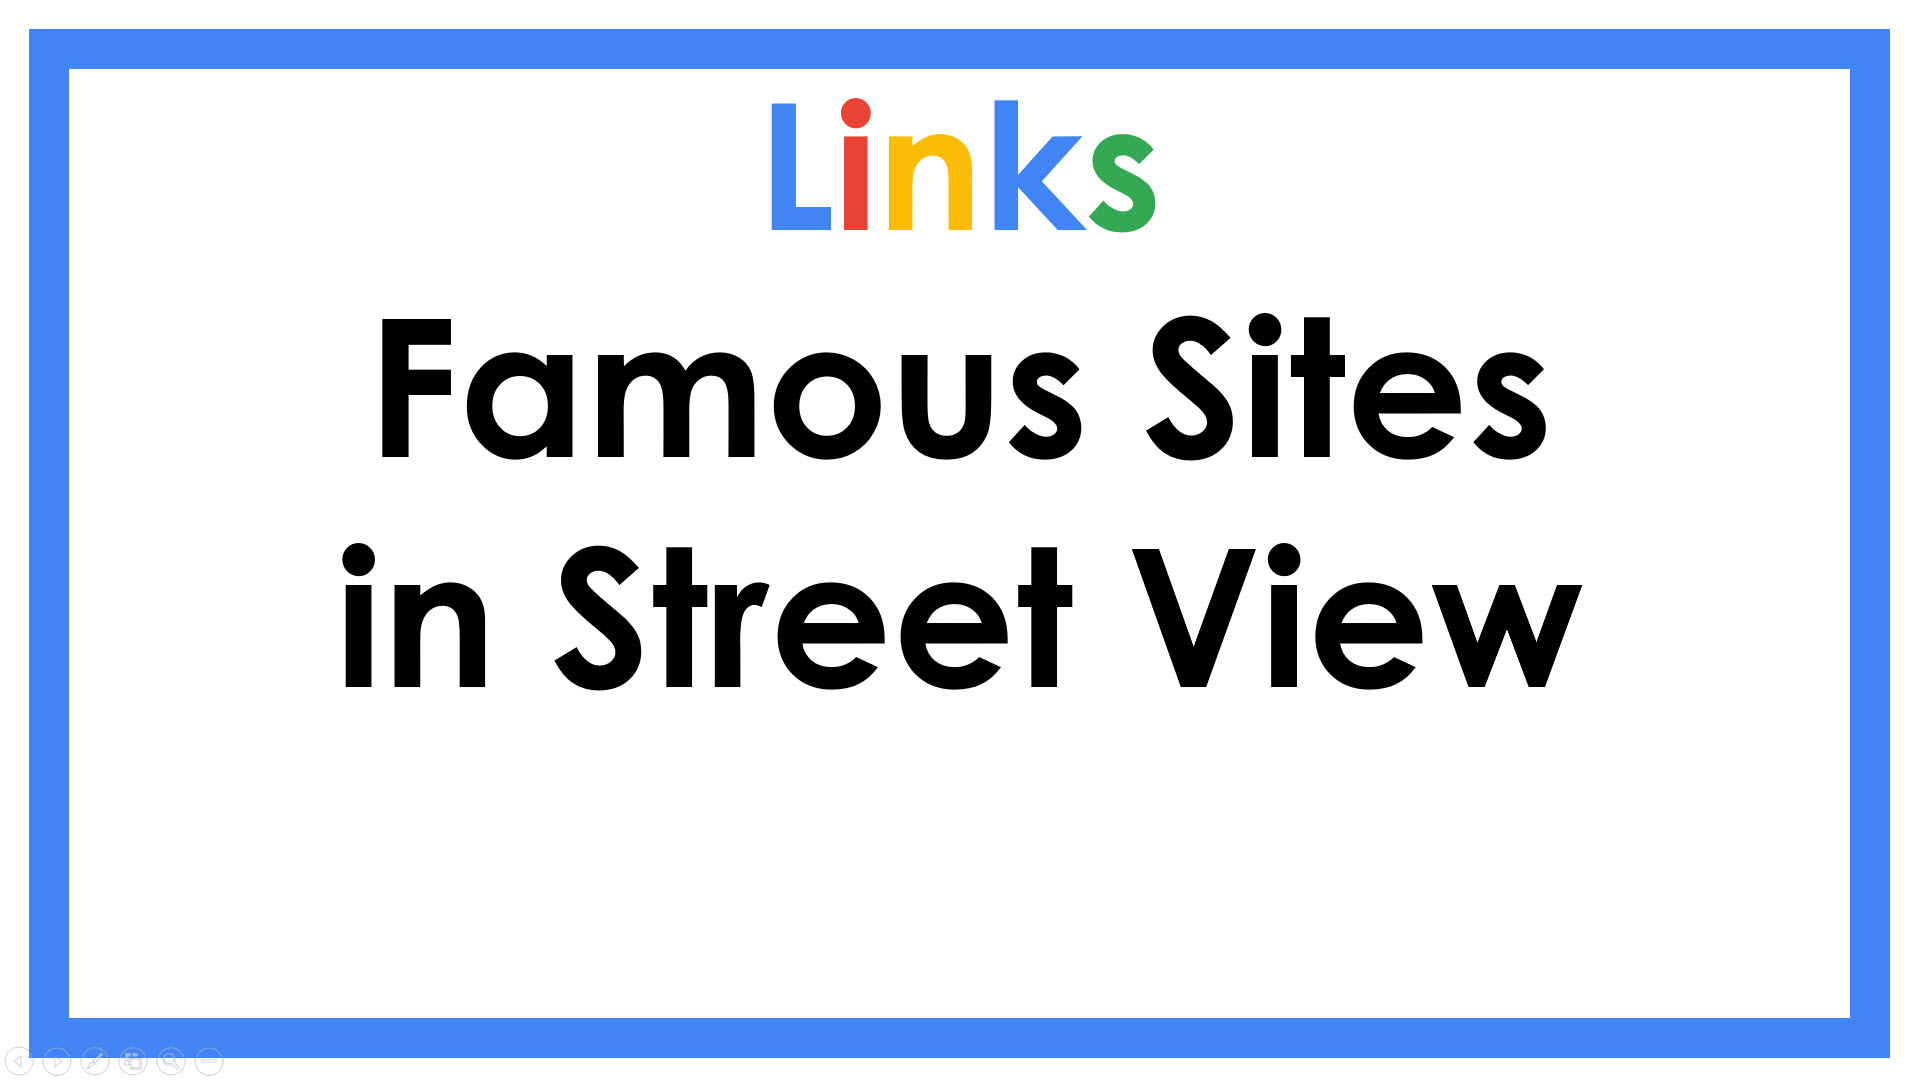 Links Famous Sites in Street View